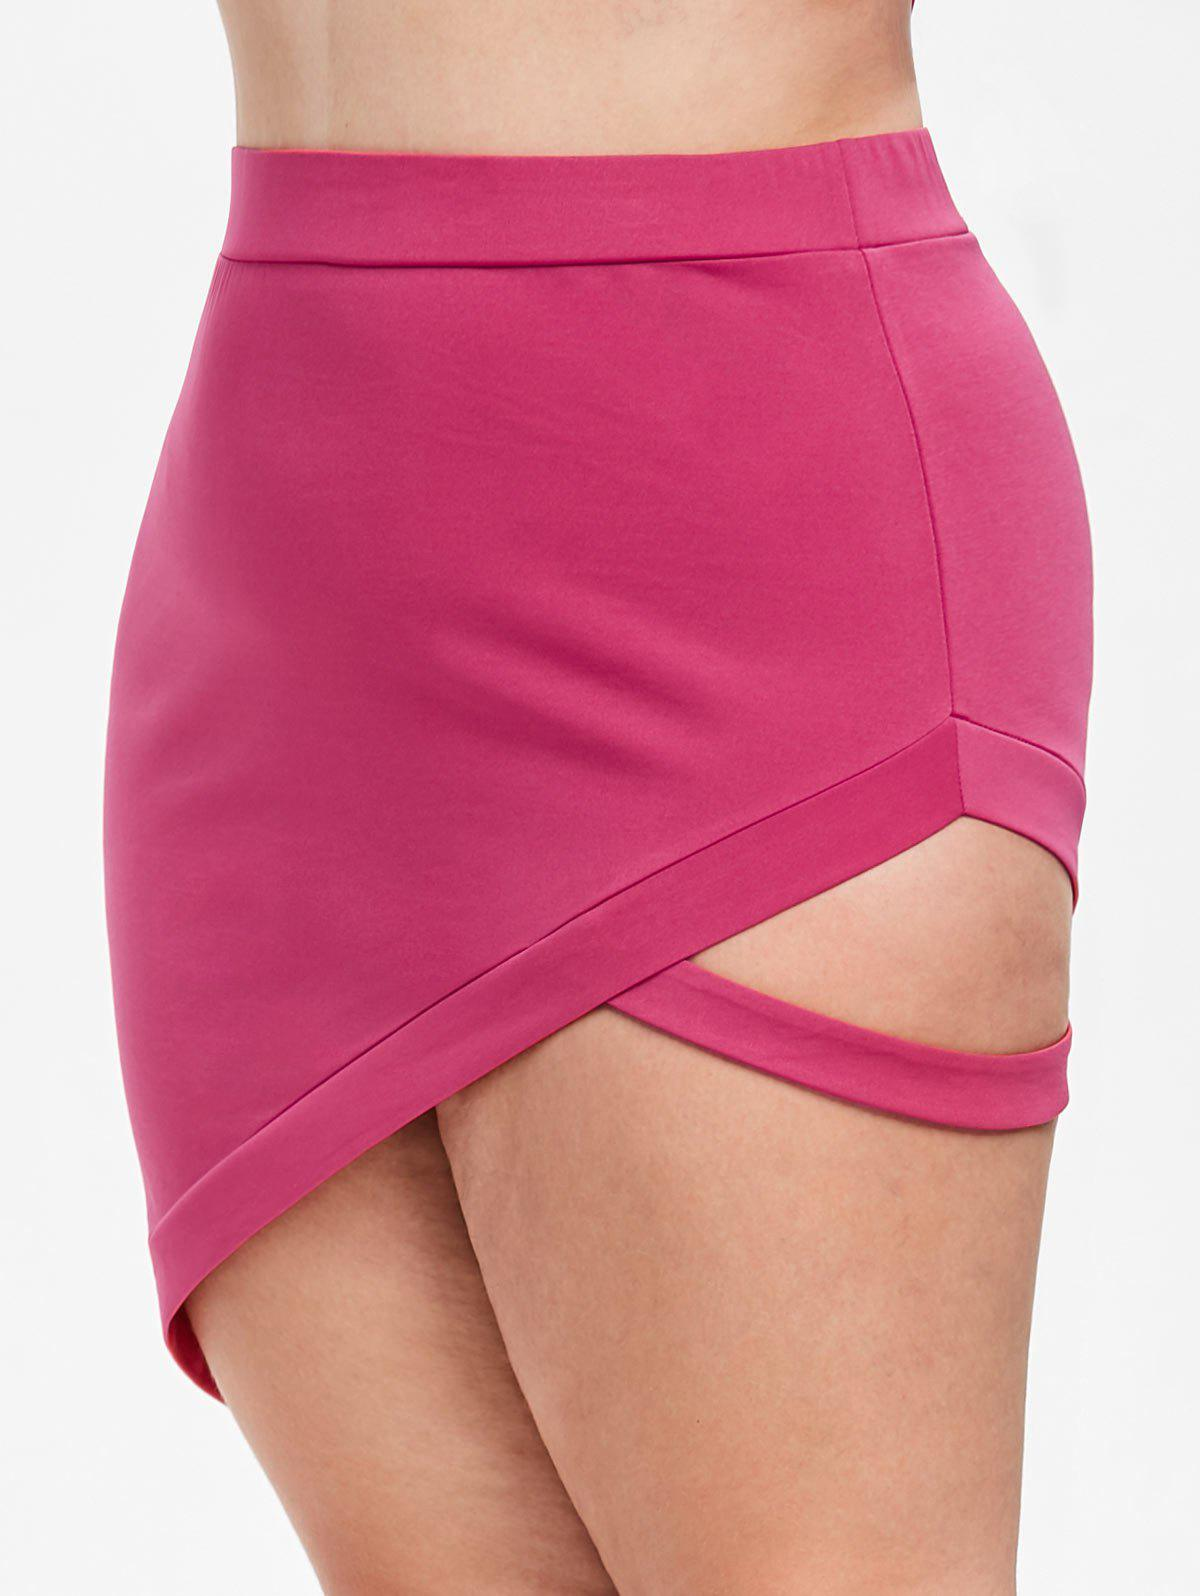 Discount Rosegal Cutout Plus Size Asymmetrical Skirt